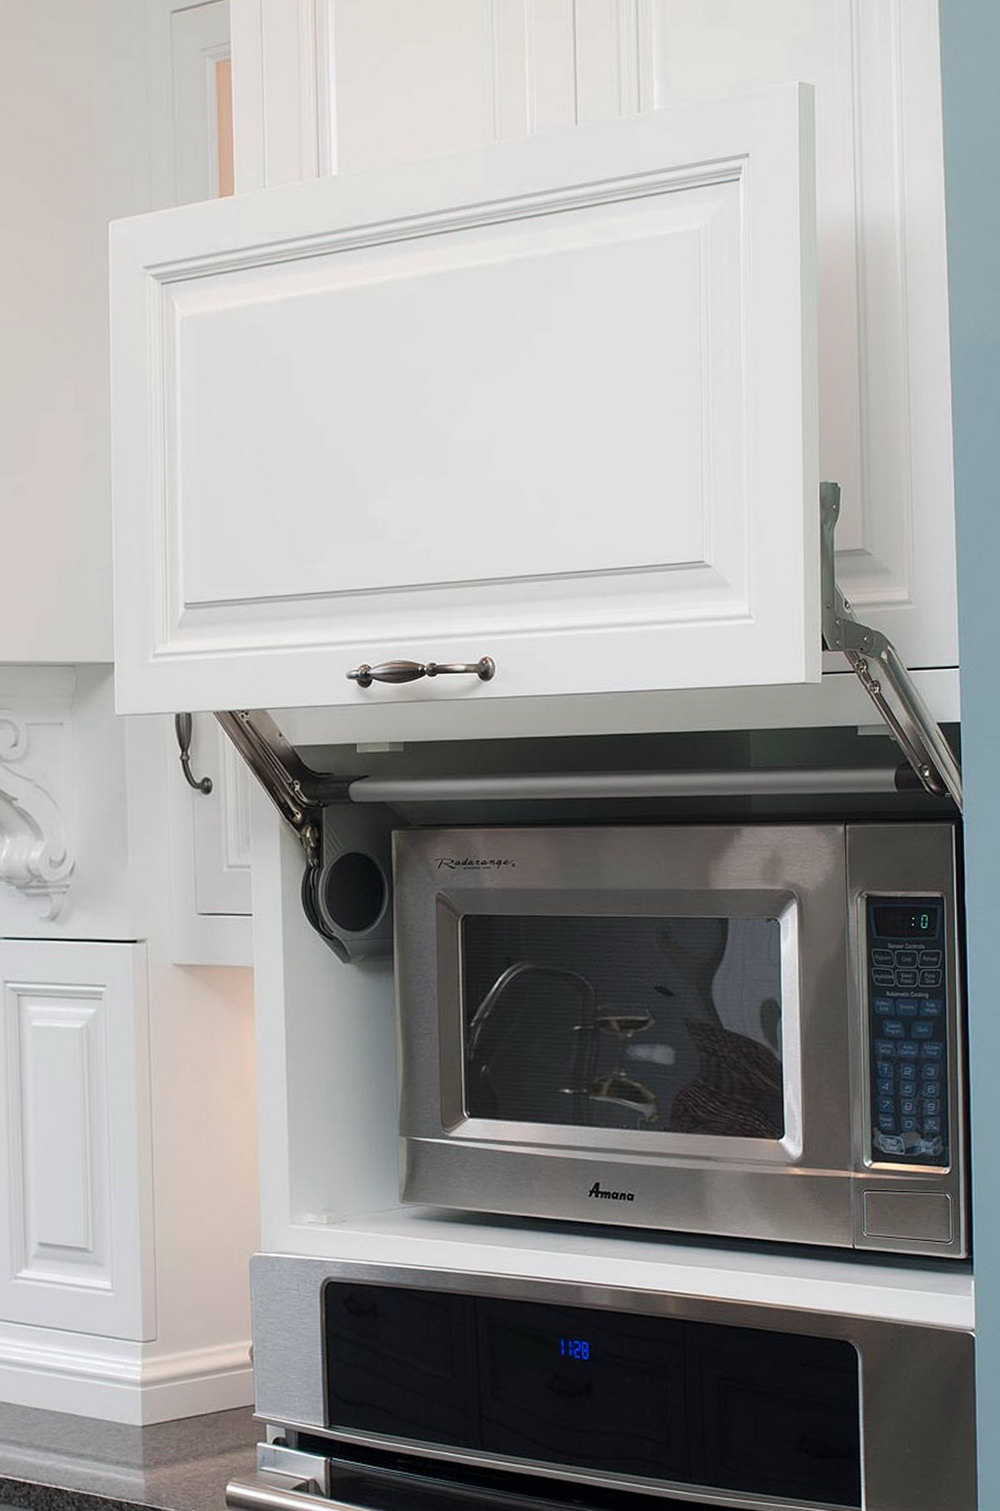 Kitchen Cabinet For Microwave Oven